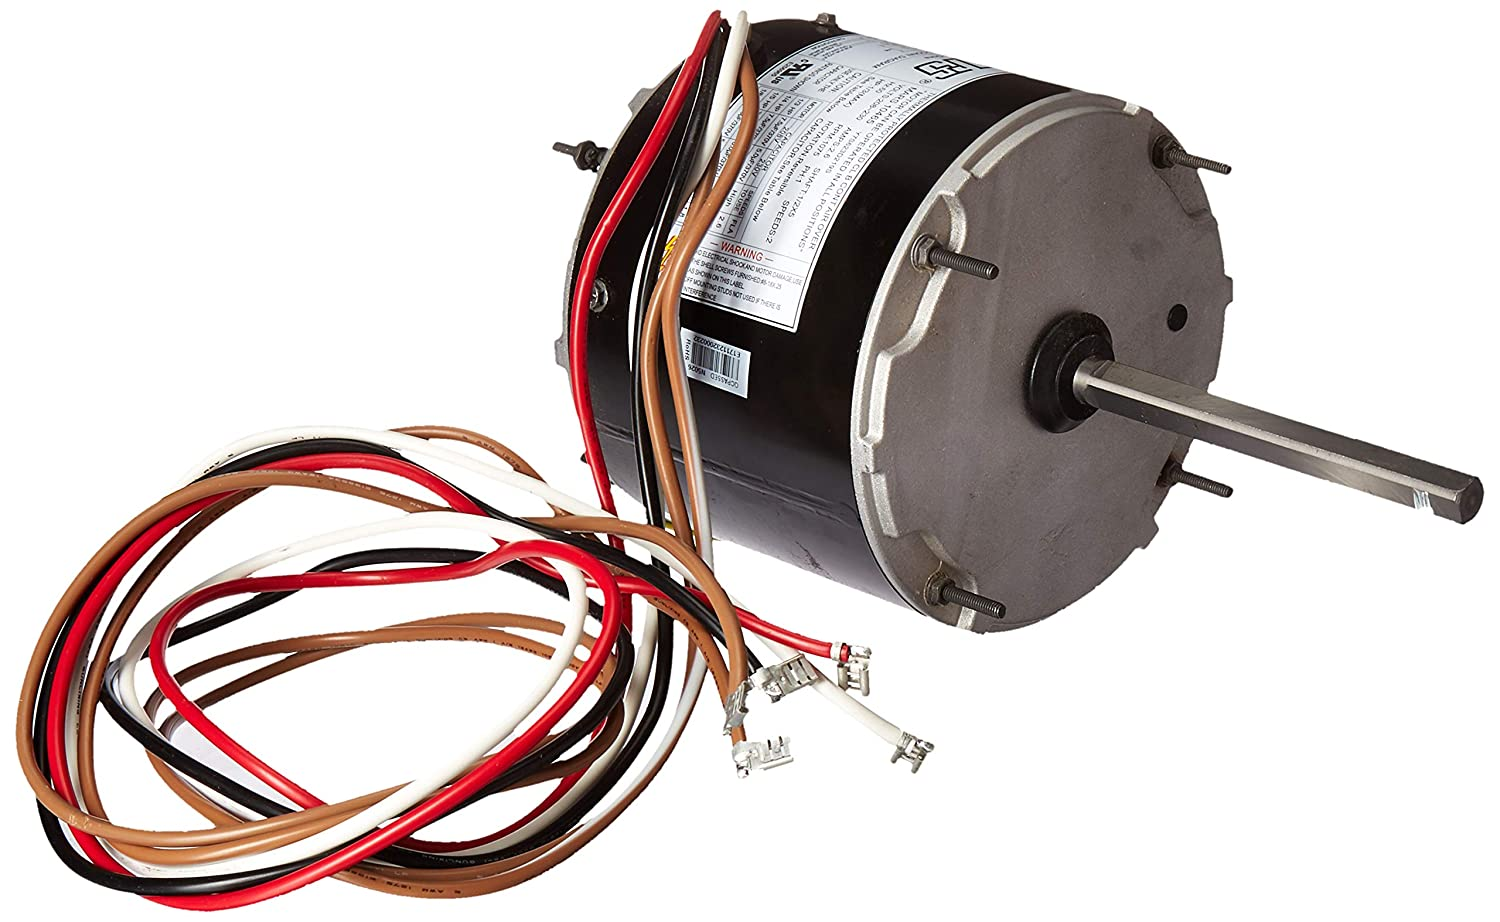 MARS - Motors & Armatures 10465 1/6-1/3 MULTI hp CF Outdoor Condenser Fan  Motor - Electric Fan Motors - Amazon.com